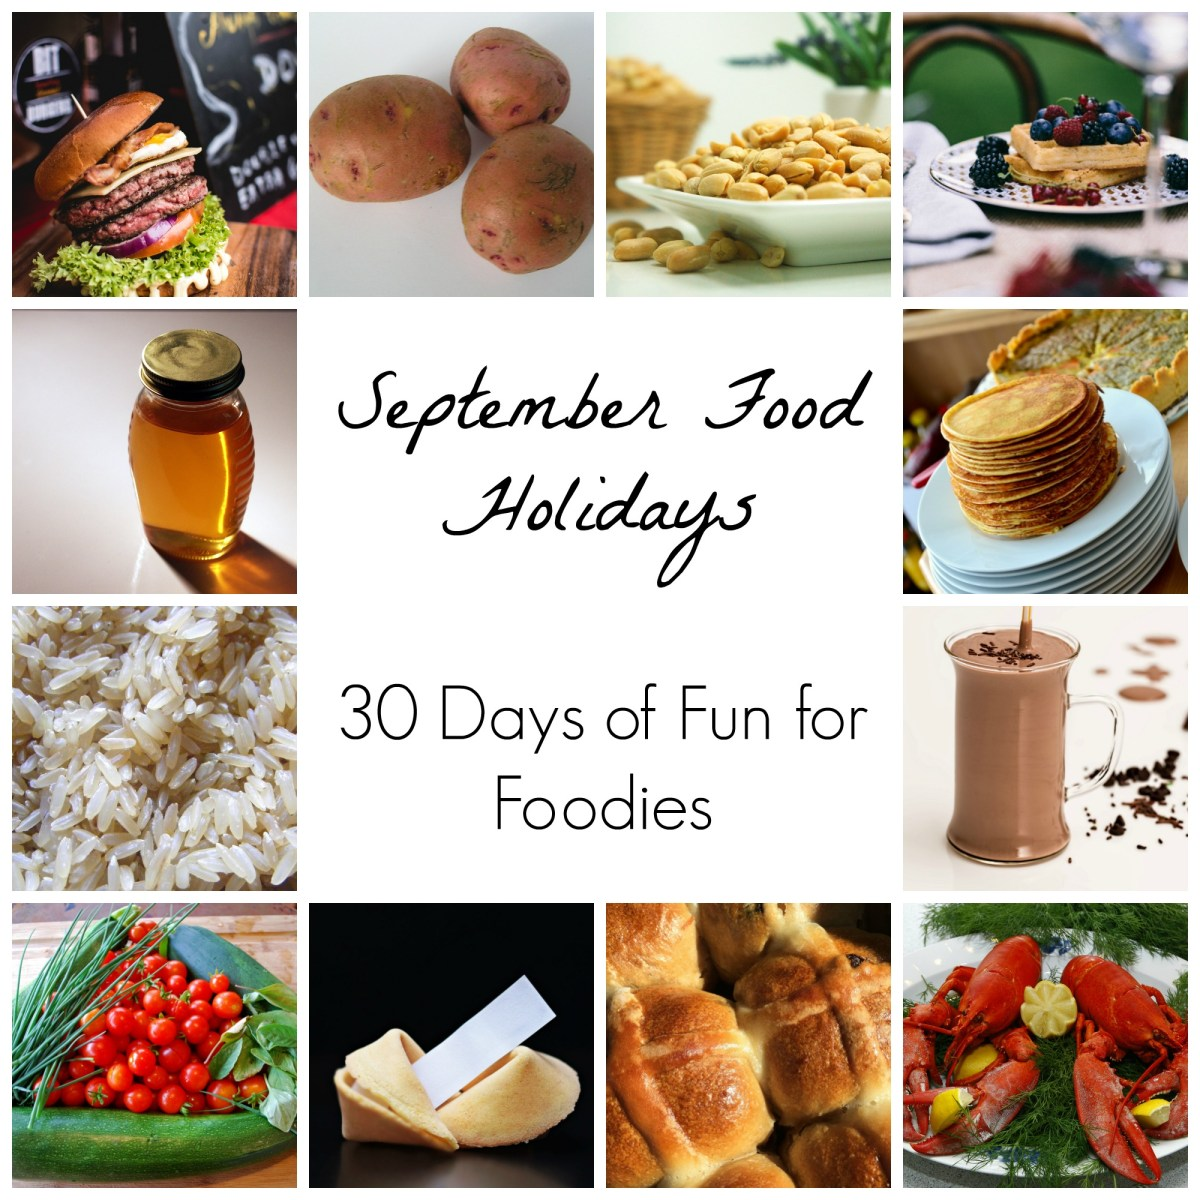 September Food Holiday Observances